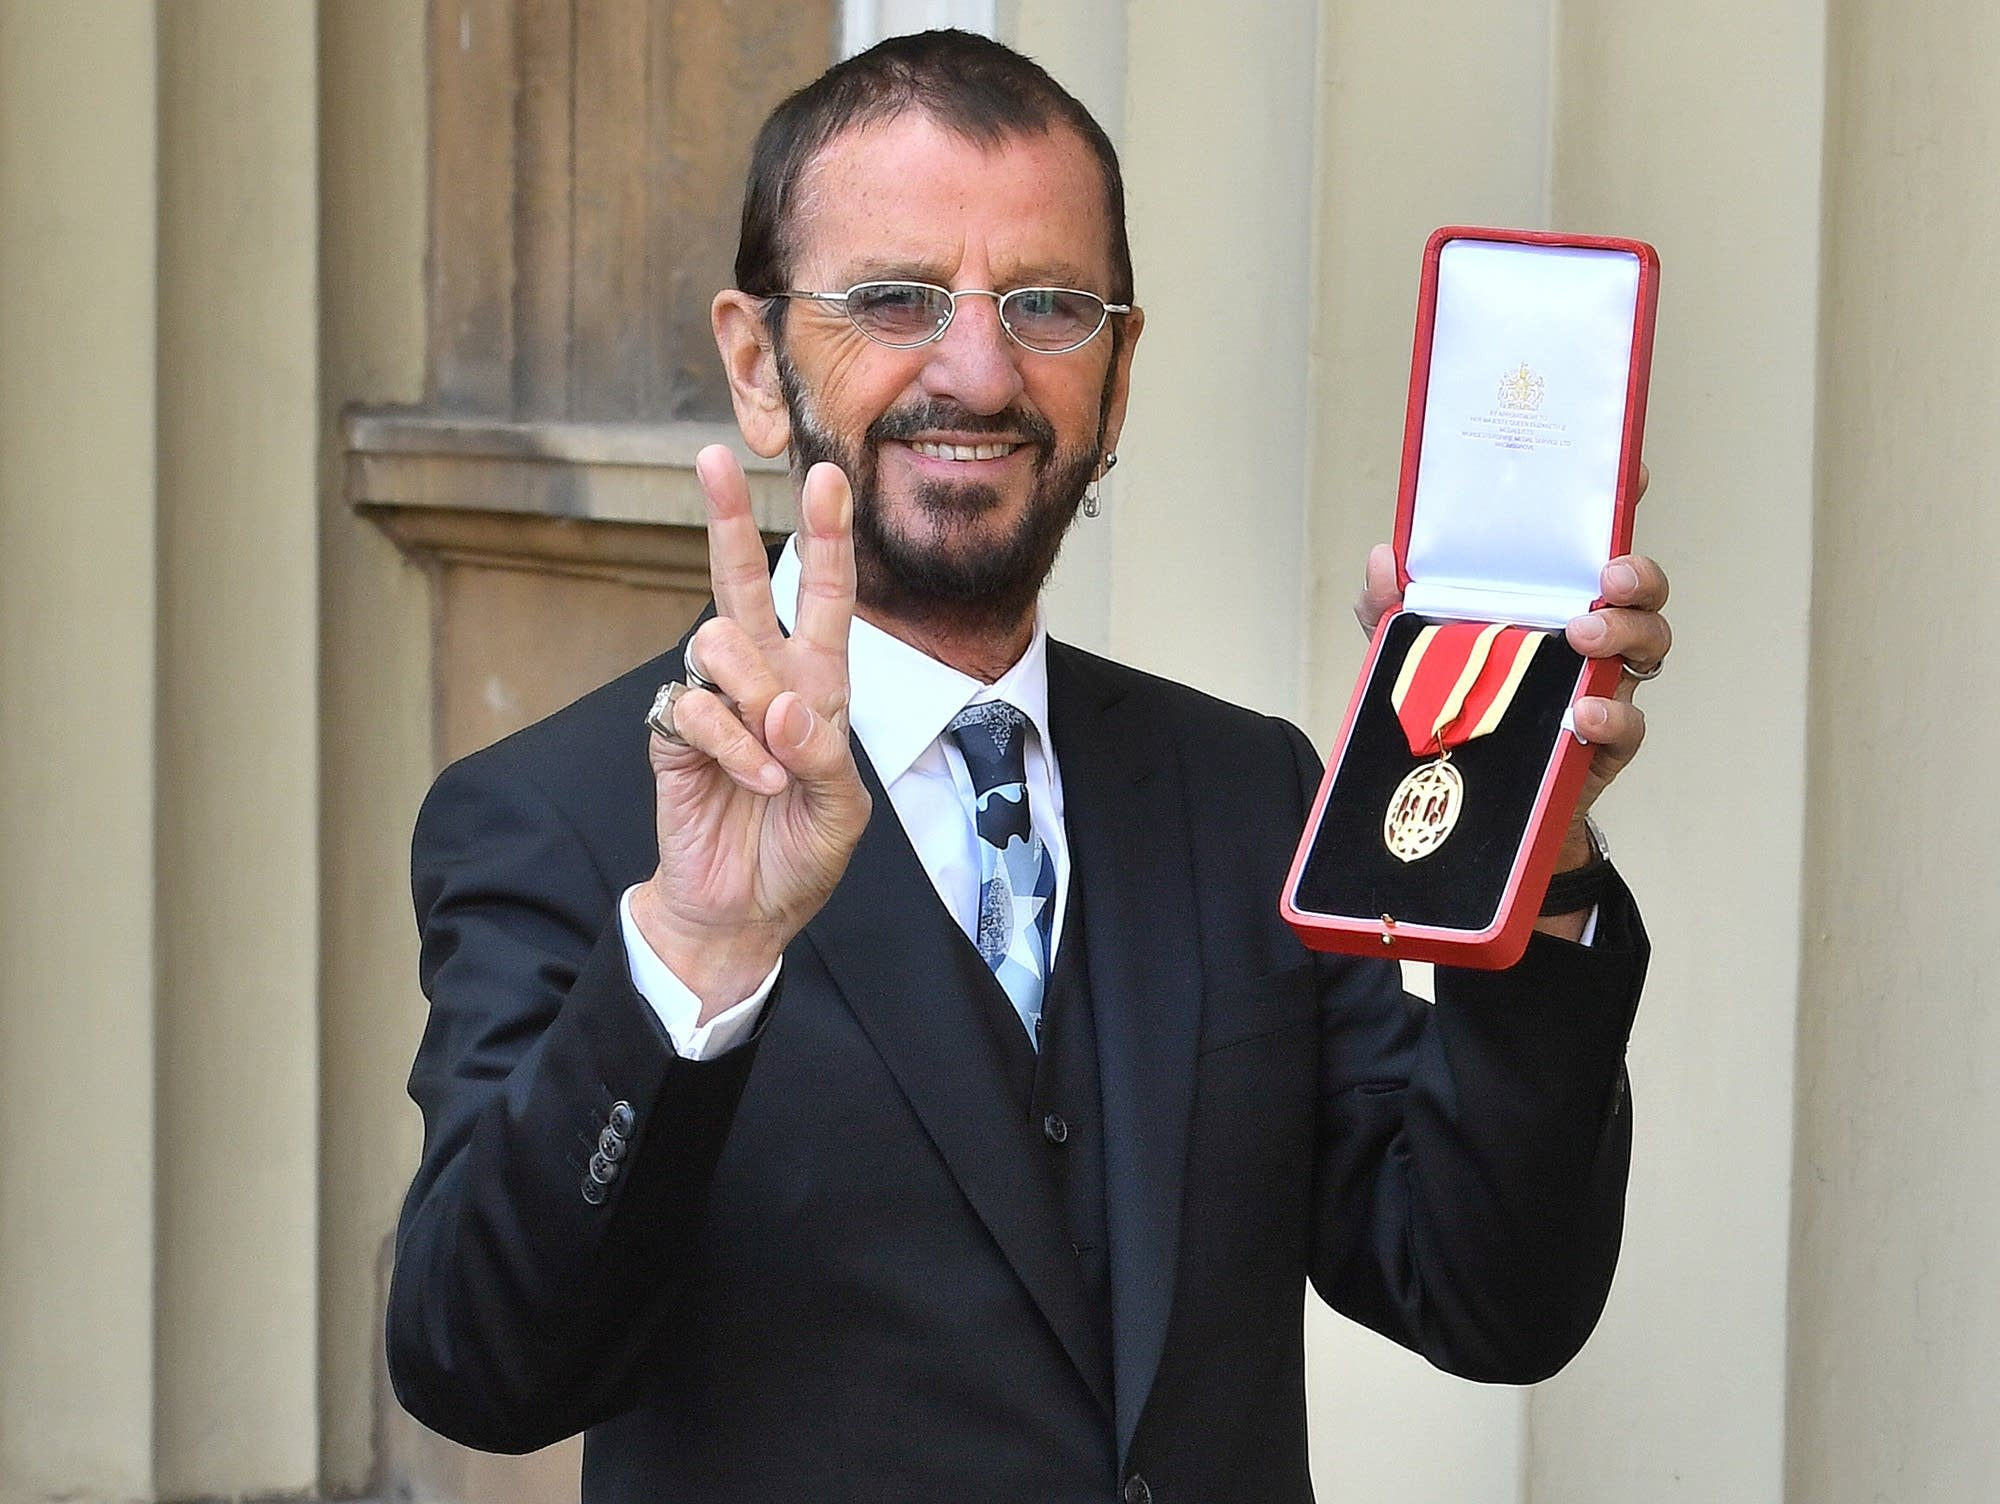 Ringo Starr After Being Appointed Knight Commander